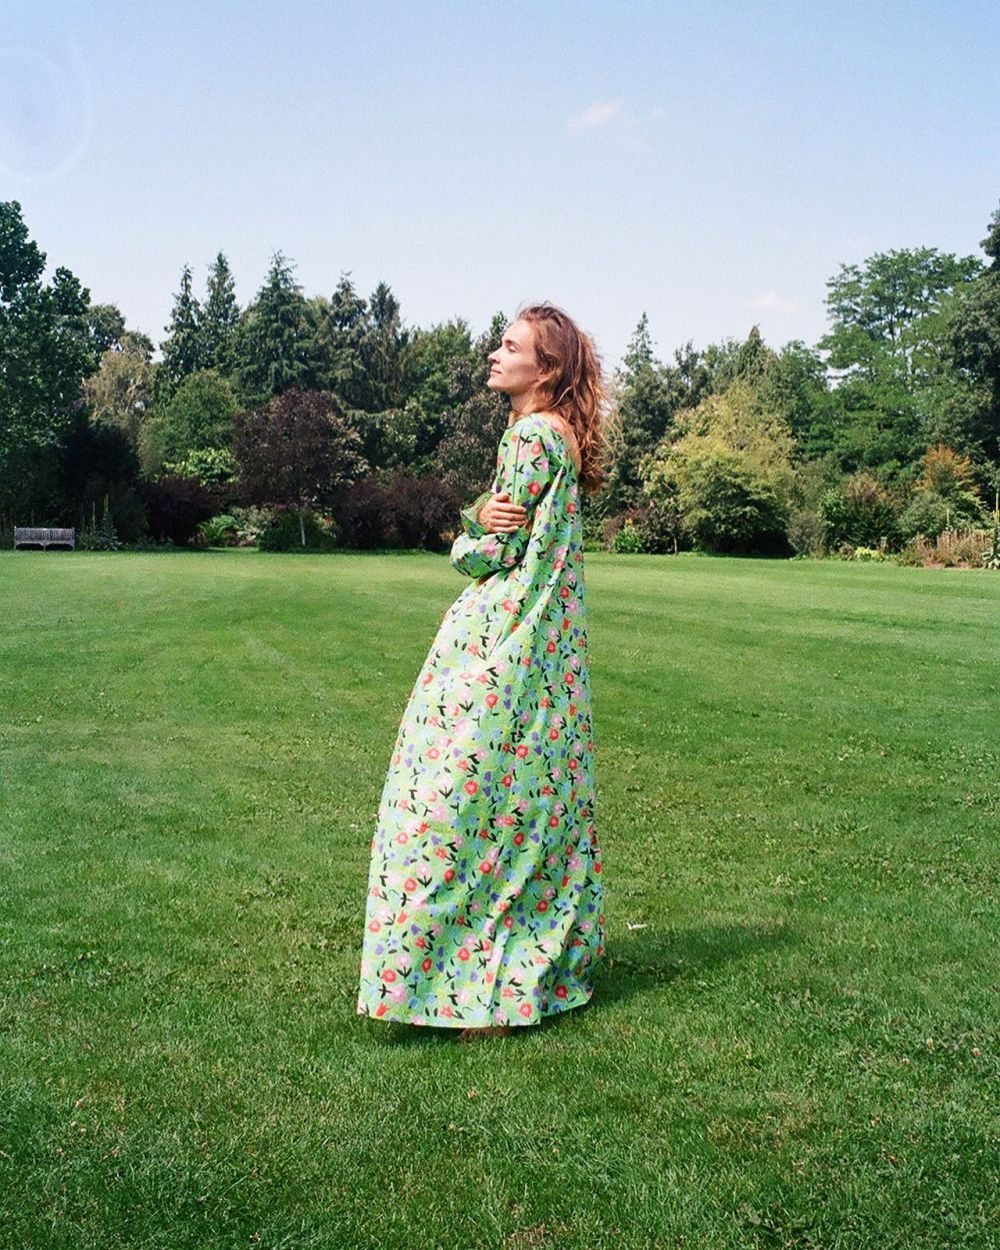 THE ESCAPE ~ ANALOG PHOTOS SHOT BY CHARLOTTE ~ LYNN WEARING THE GREEN KATHERINE DRESS. 🌿🌳🌻 Now available at selected stores worldwide. #HS20